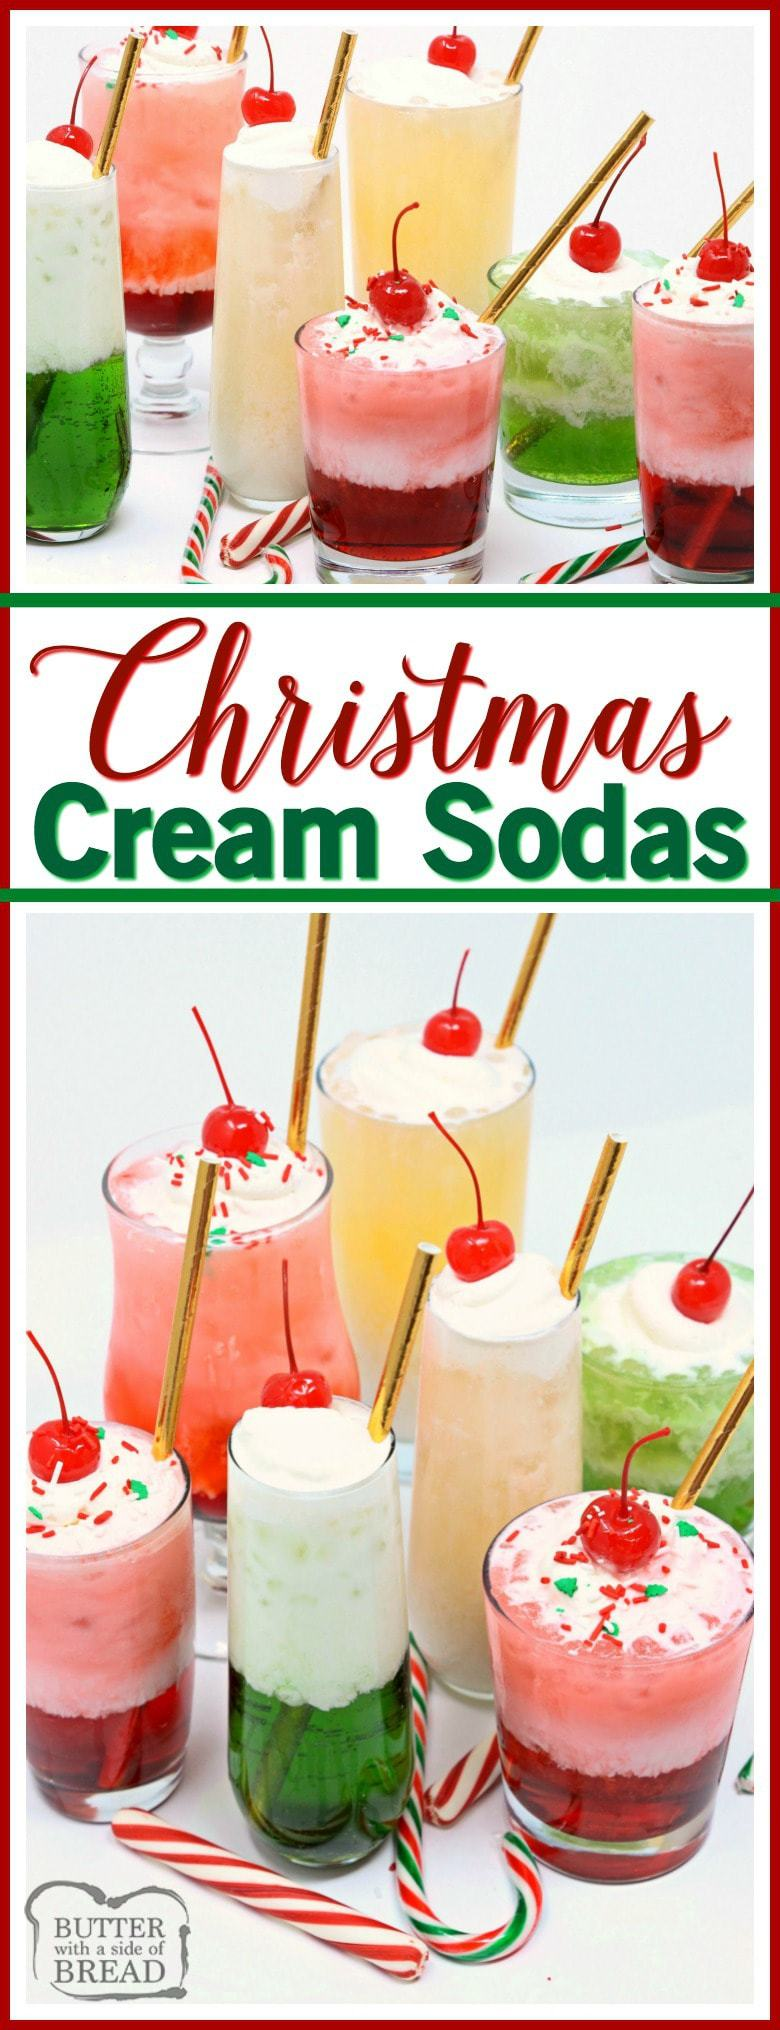 Christmas Cream Sodas made with sweet syrups, cream & club soda are a delicious & festive addition to any holiday party! Delicious mocktail that's so easy!